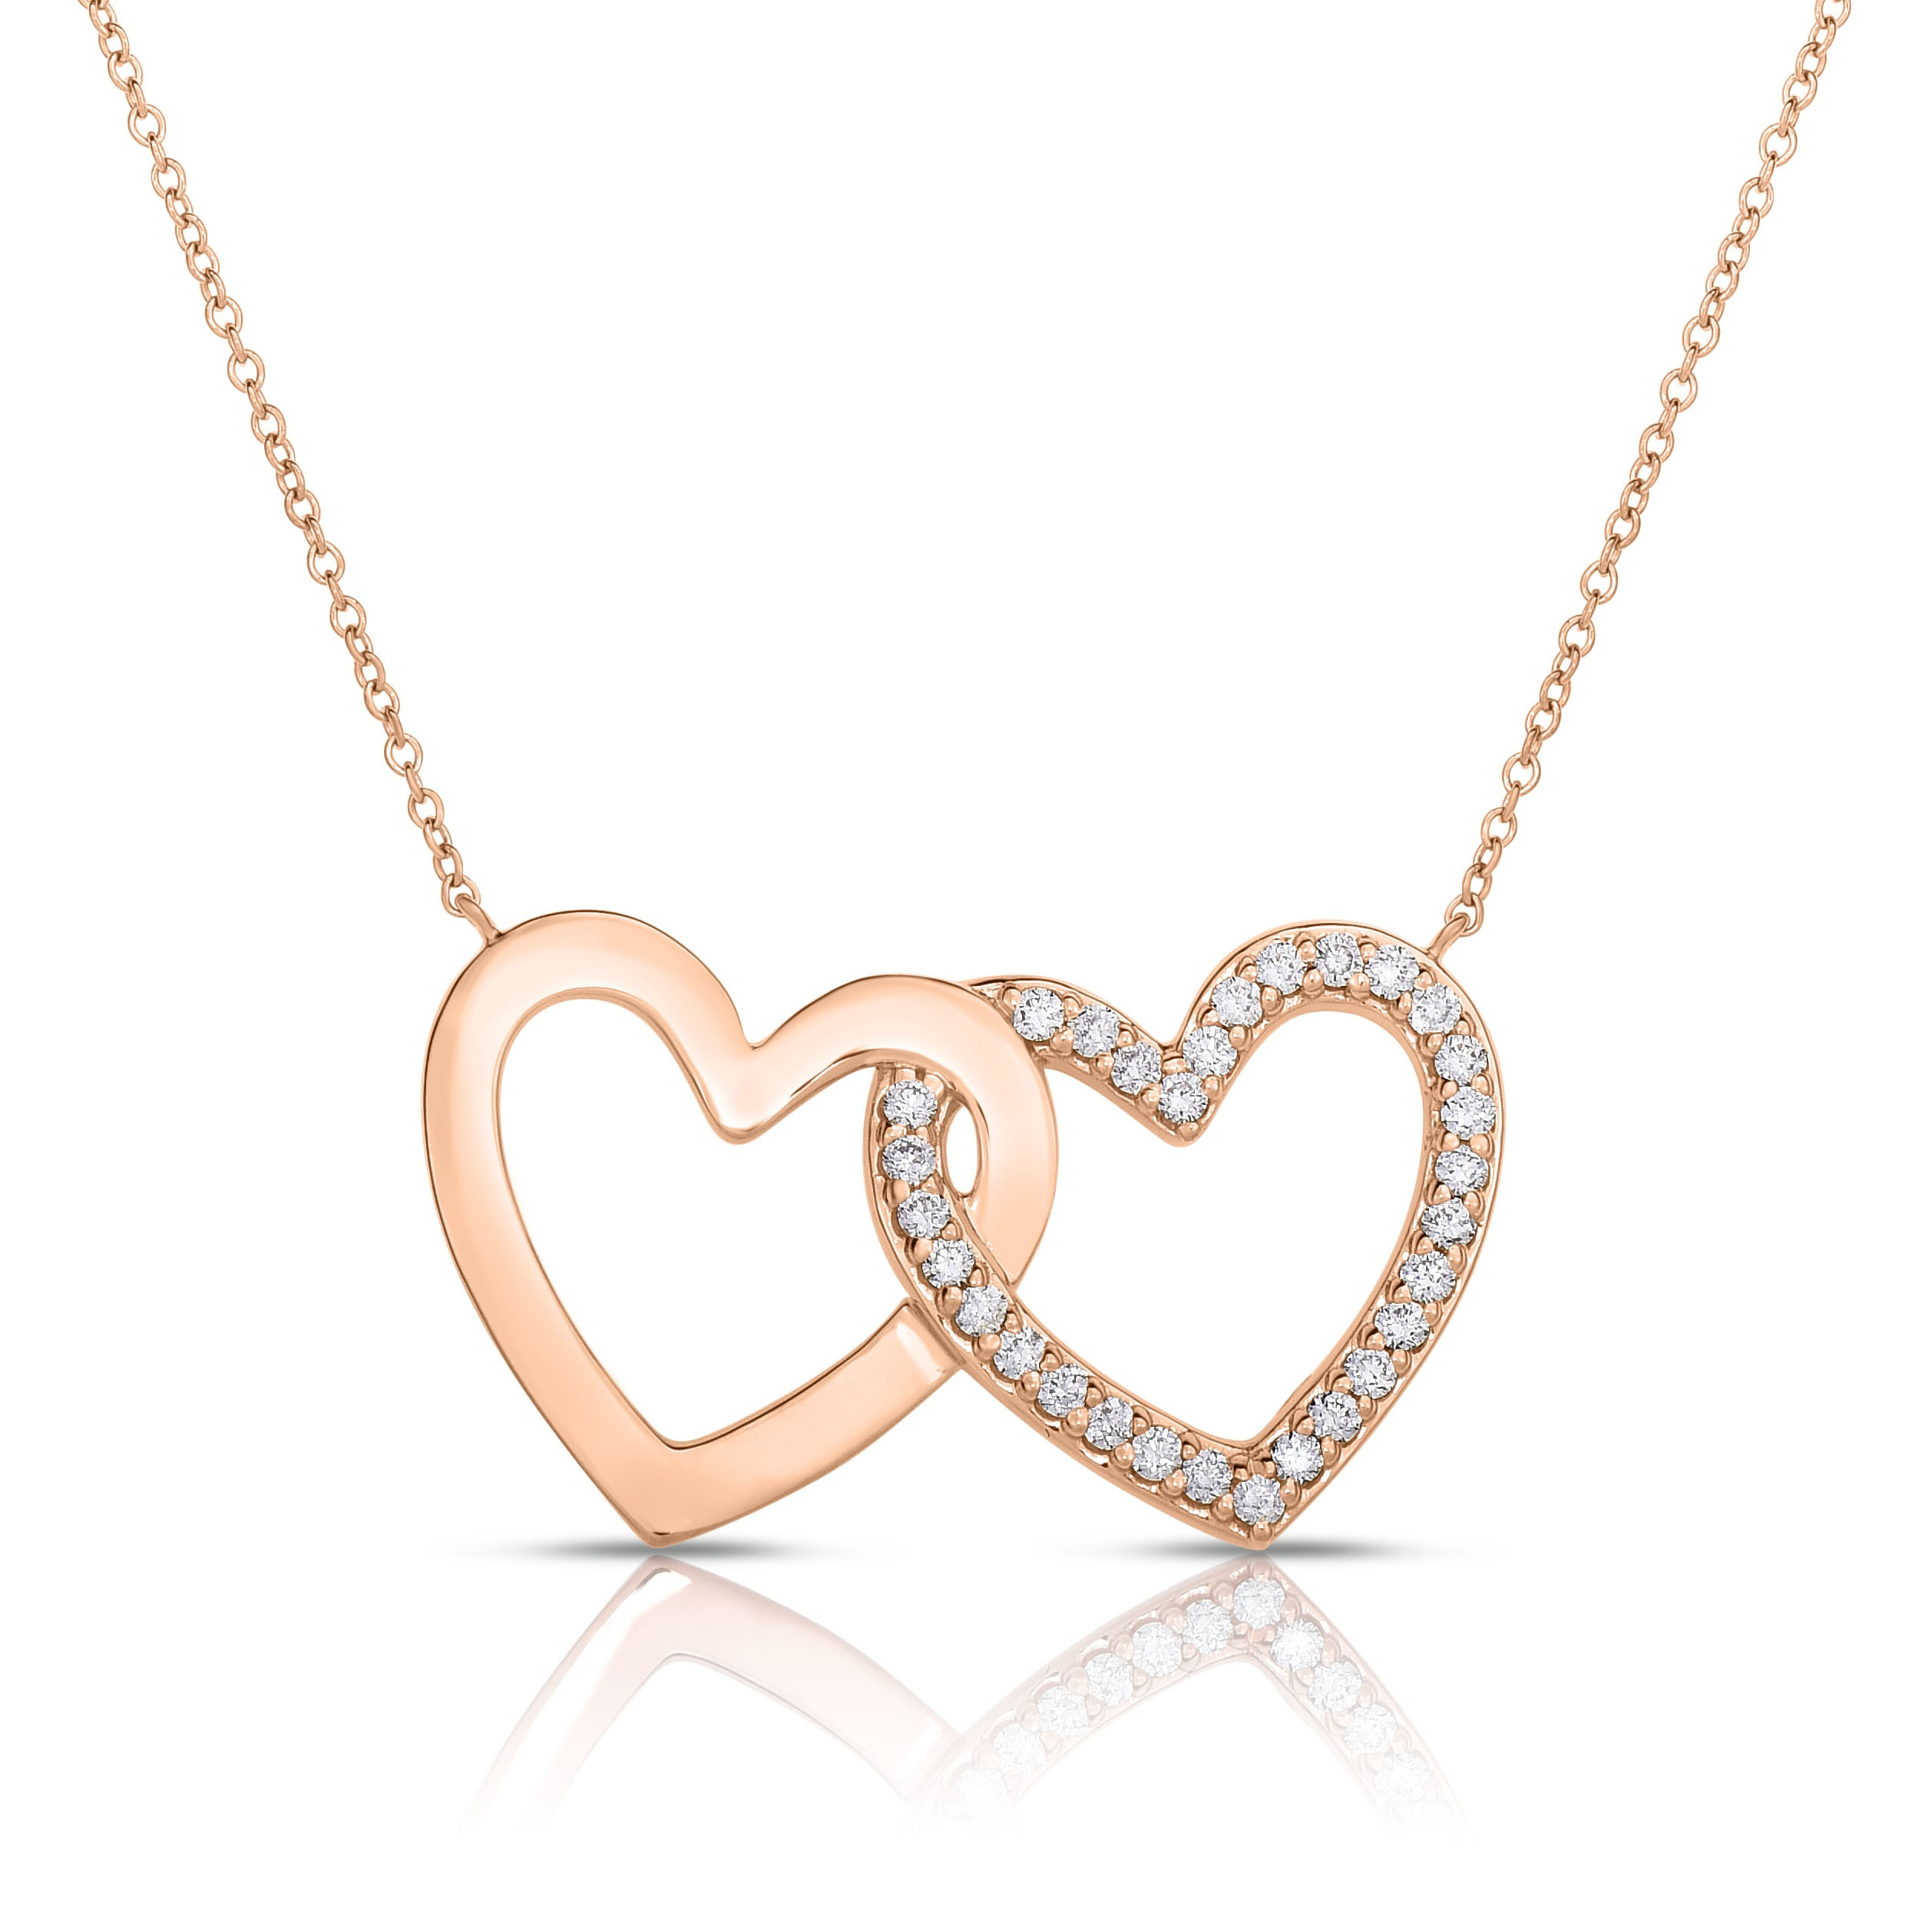 18K Rose Gold 2 Hearts Love Bonds Necklace with Lab-Grown Diamonds on AIDIA Extendable Link Chain